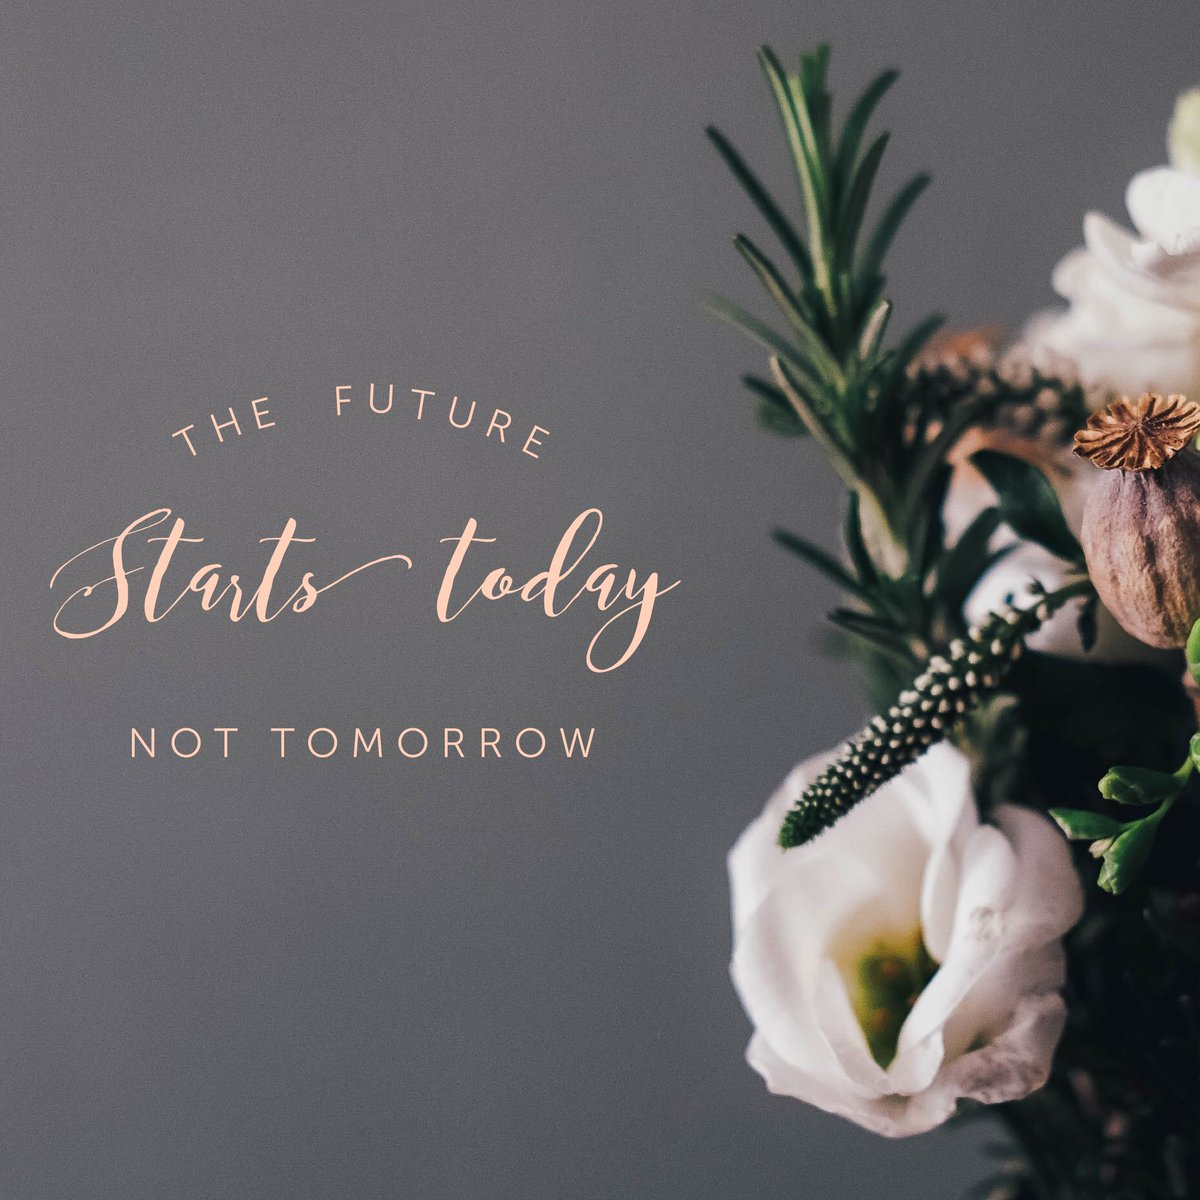 The choices you make today will determine your future. Stop waiting for the life you want to begin. Start today. https://t.co/aWCRQX26Rp